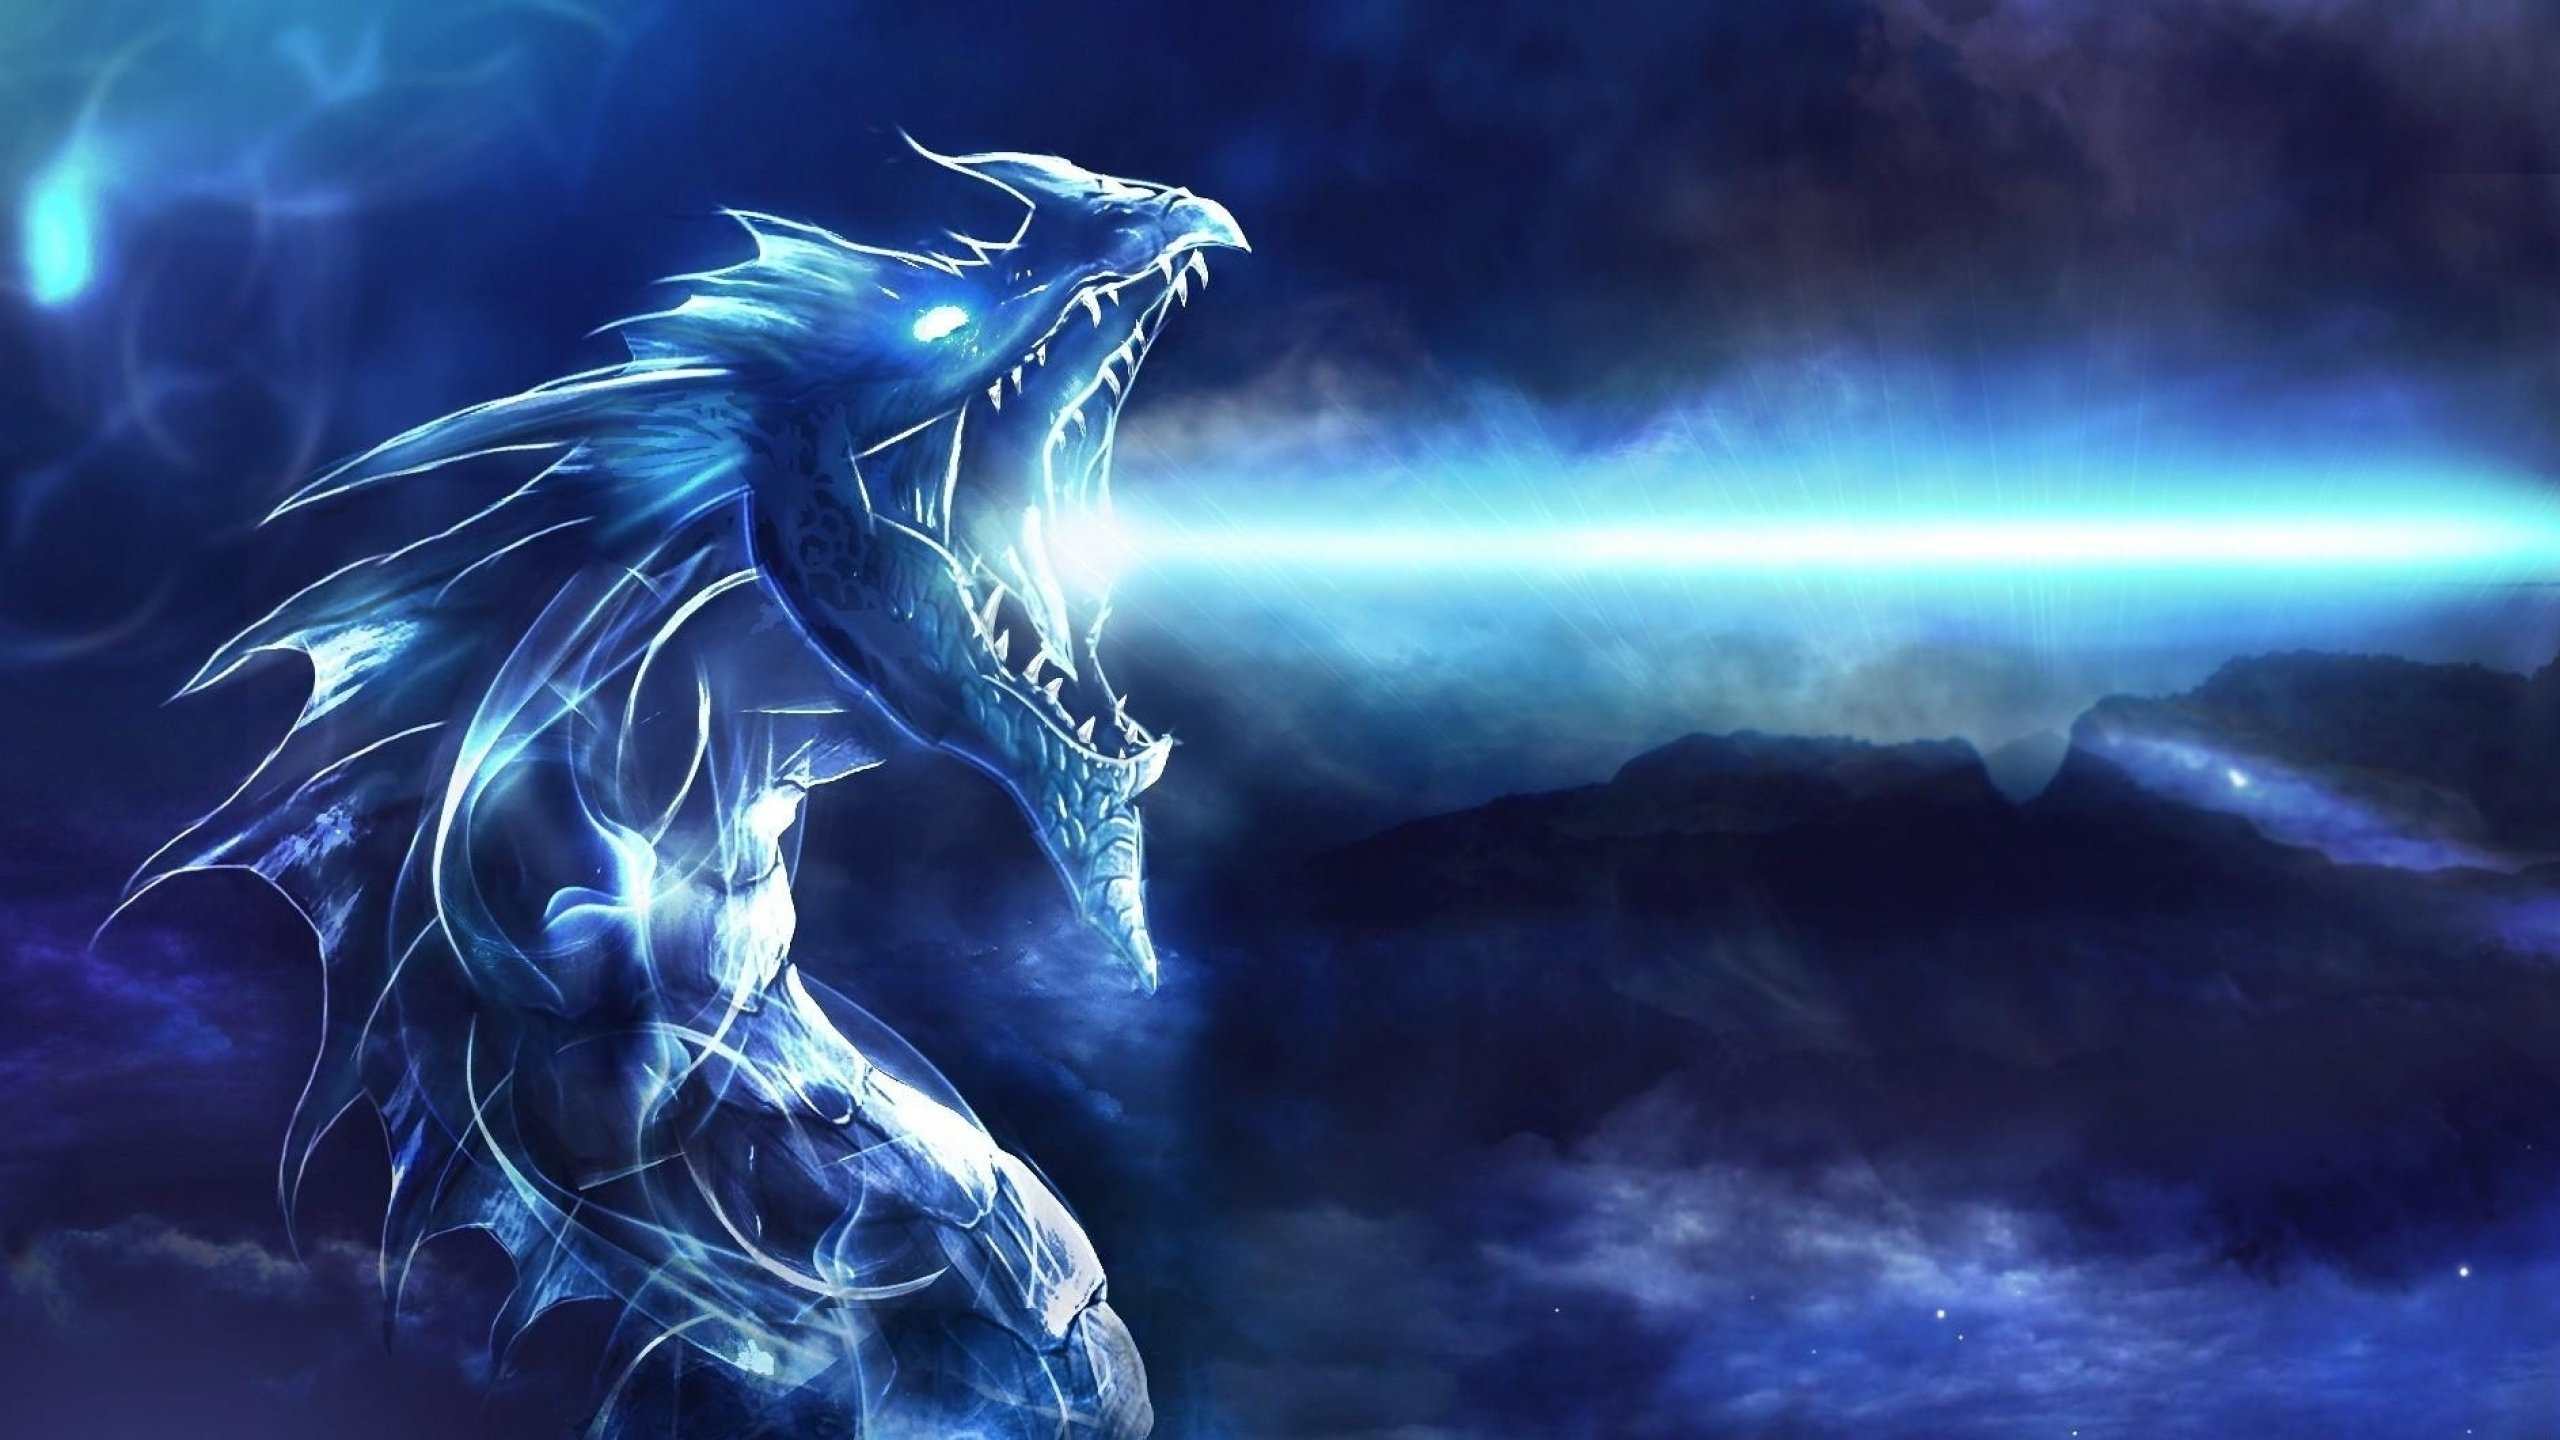 2560x1440 Dragon Wallpapers HD Backgrounds, Images, Pics, Photos Free Download ...